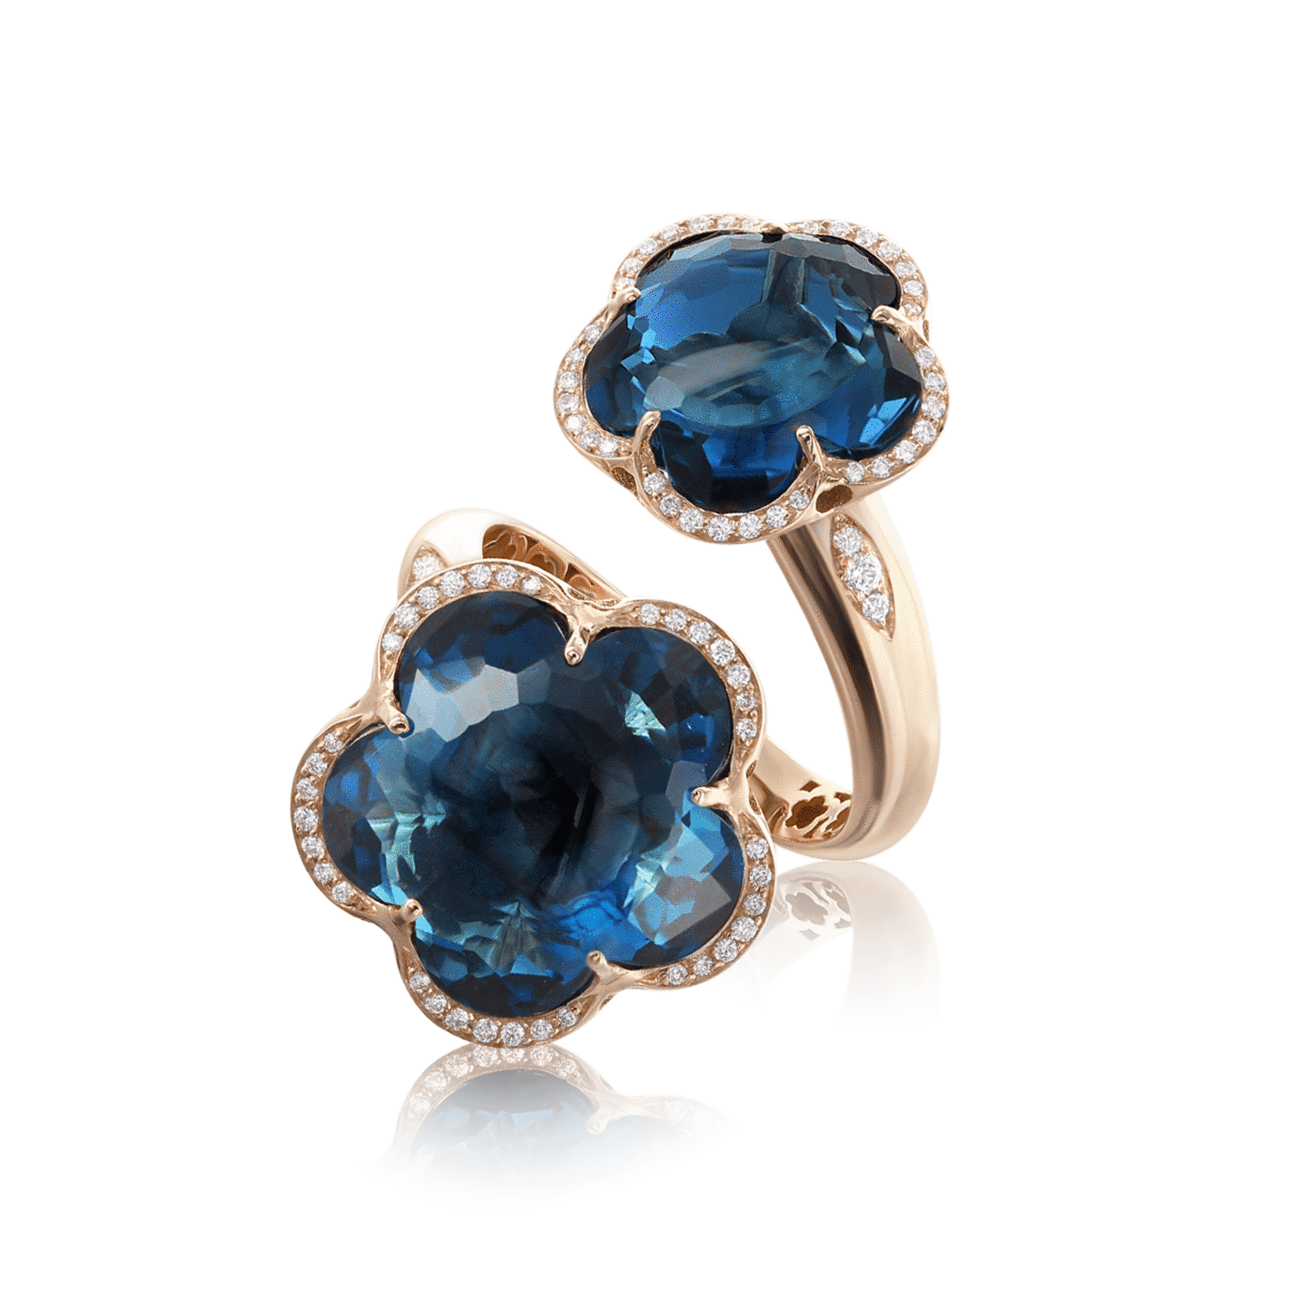 BON TON RING WITH LONDON BLUE TOPAZ AND DIAMONDS